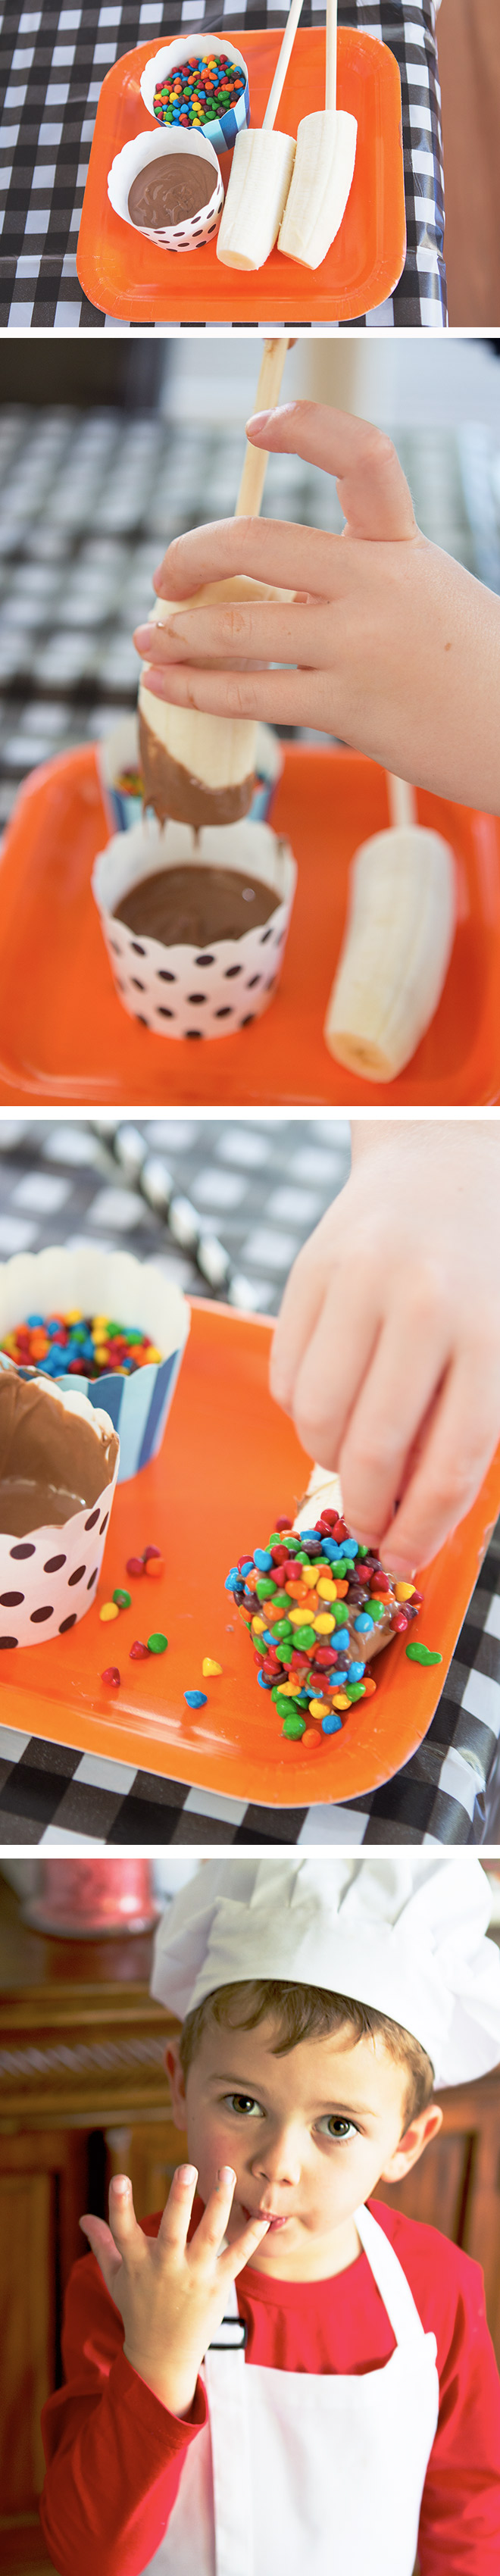 Yummy choc-dipped bananas are a great party food at a Little Chefs Party!